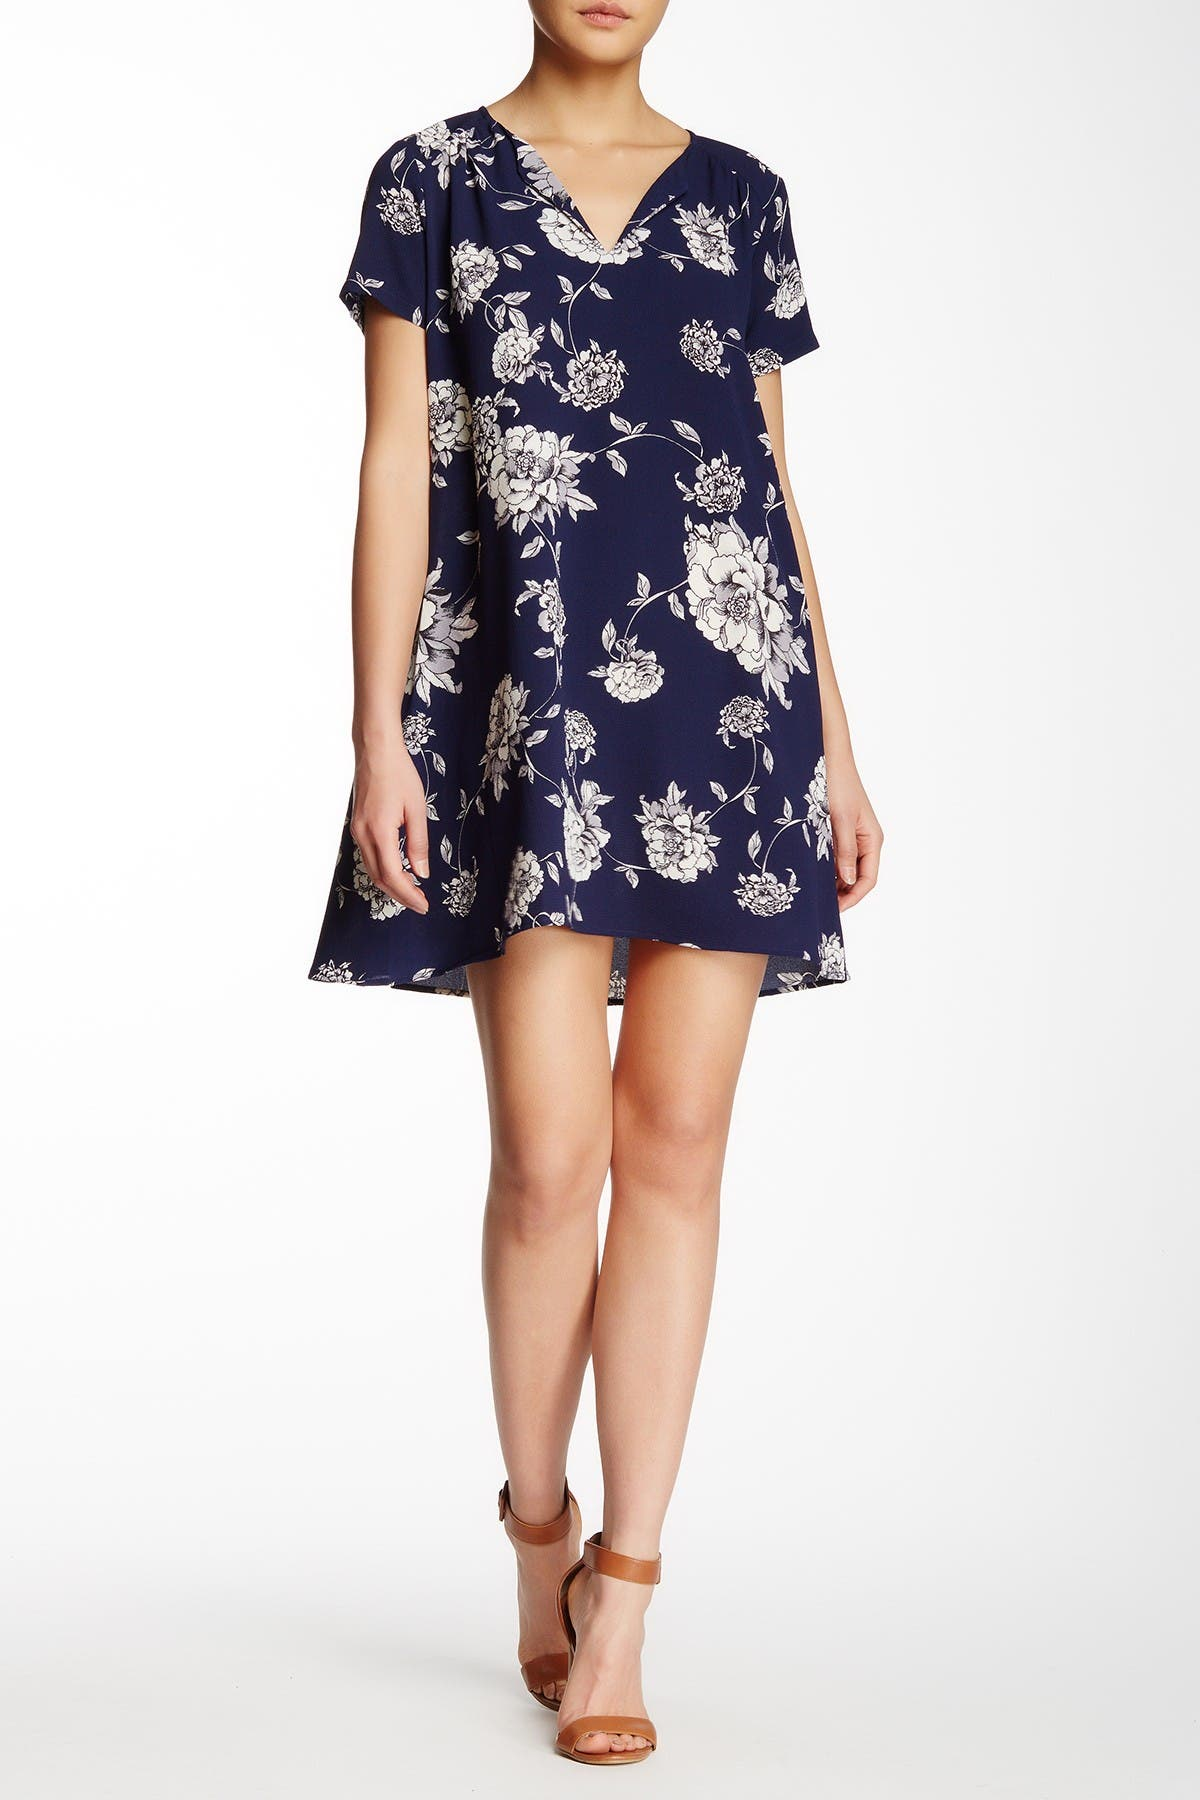 Image of Lush Split Neck Floral Print Dress